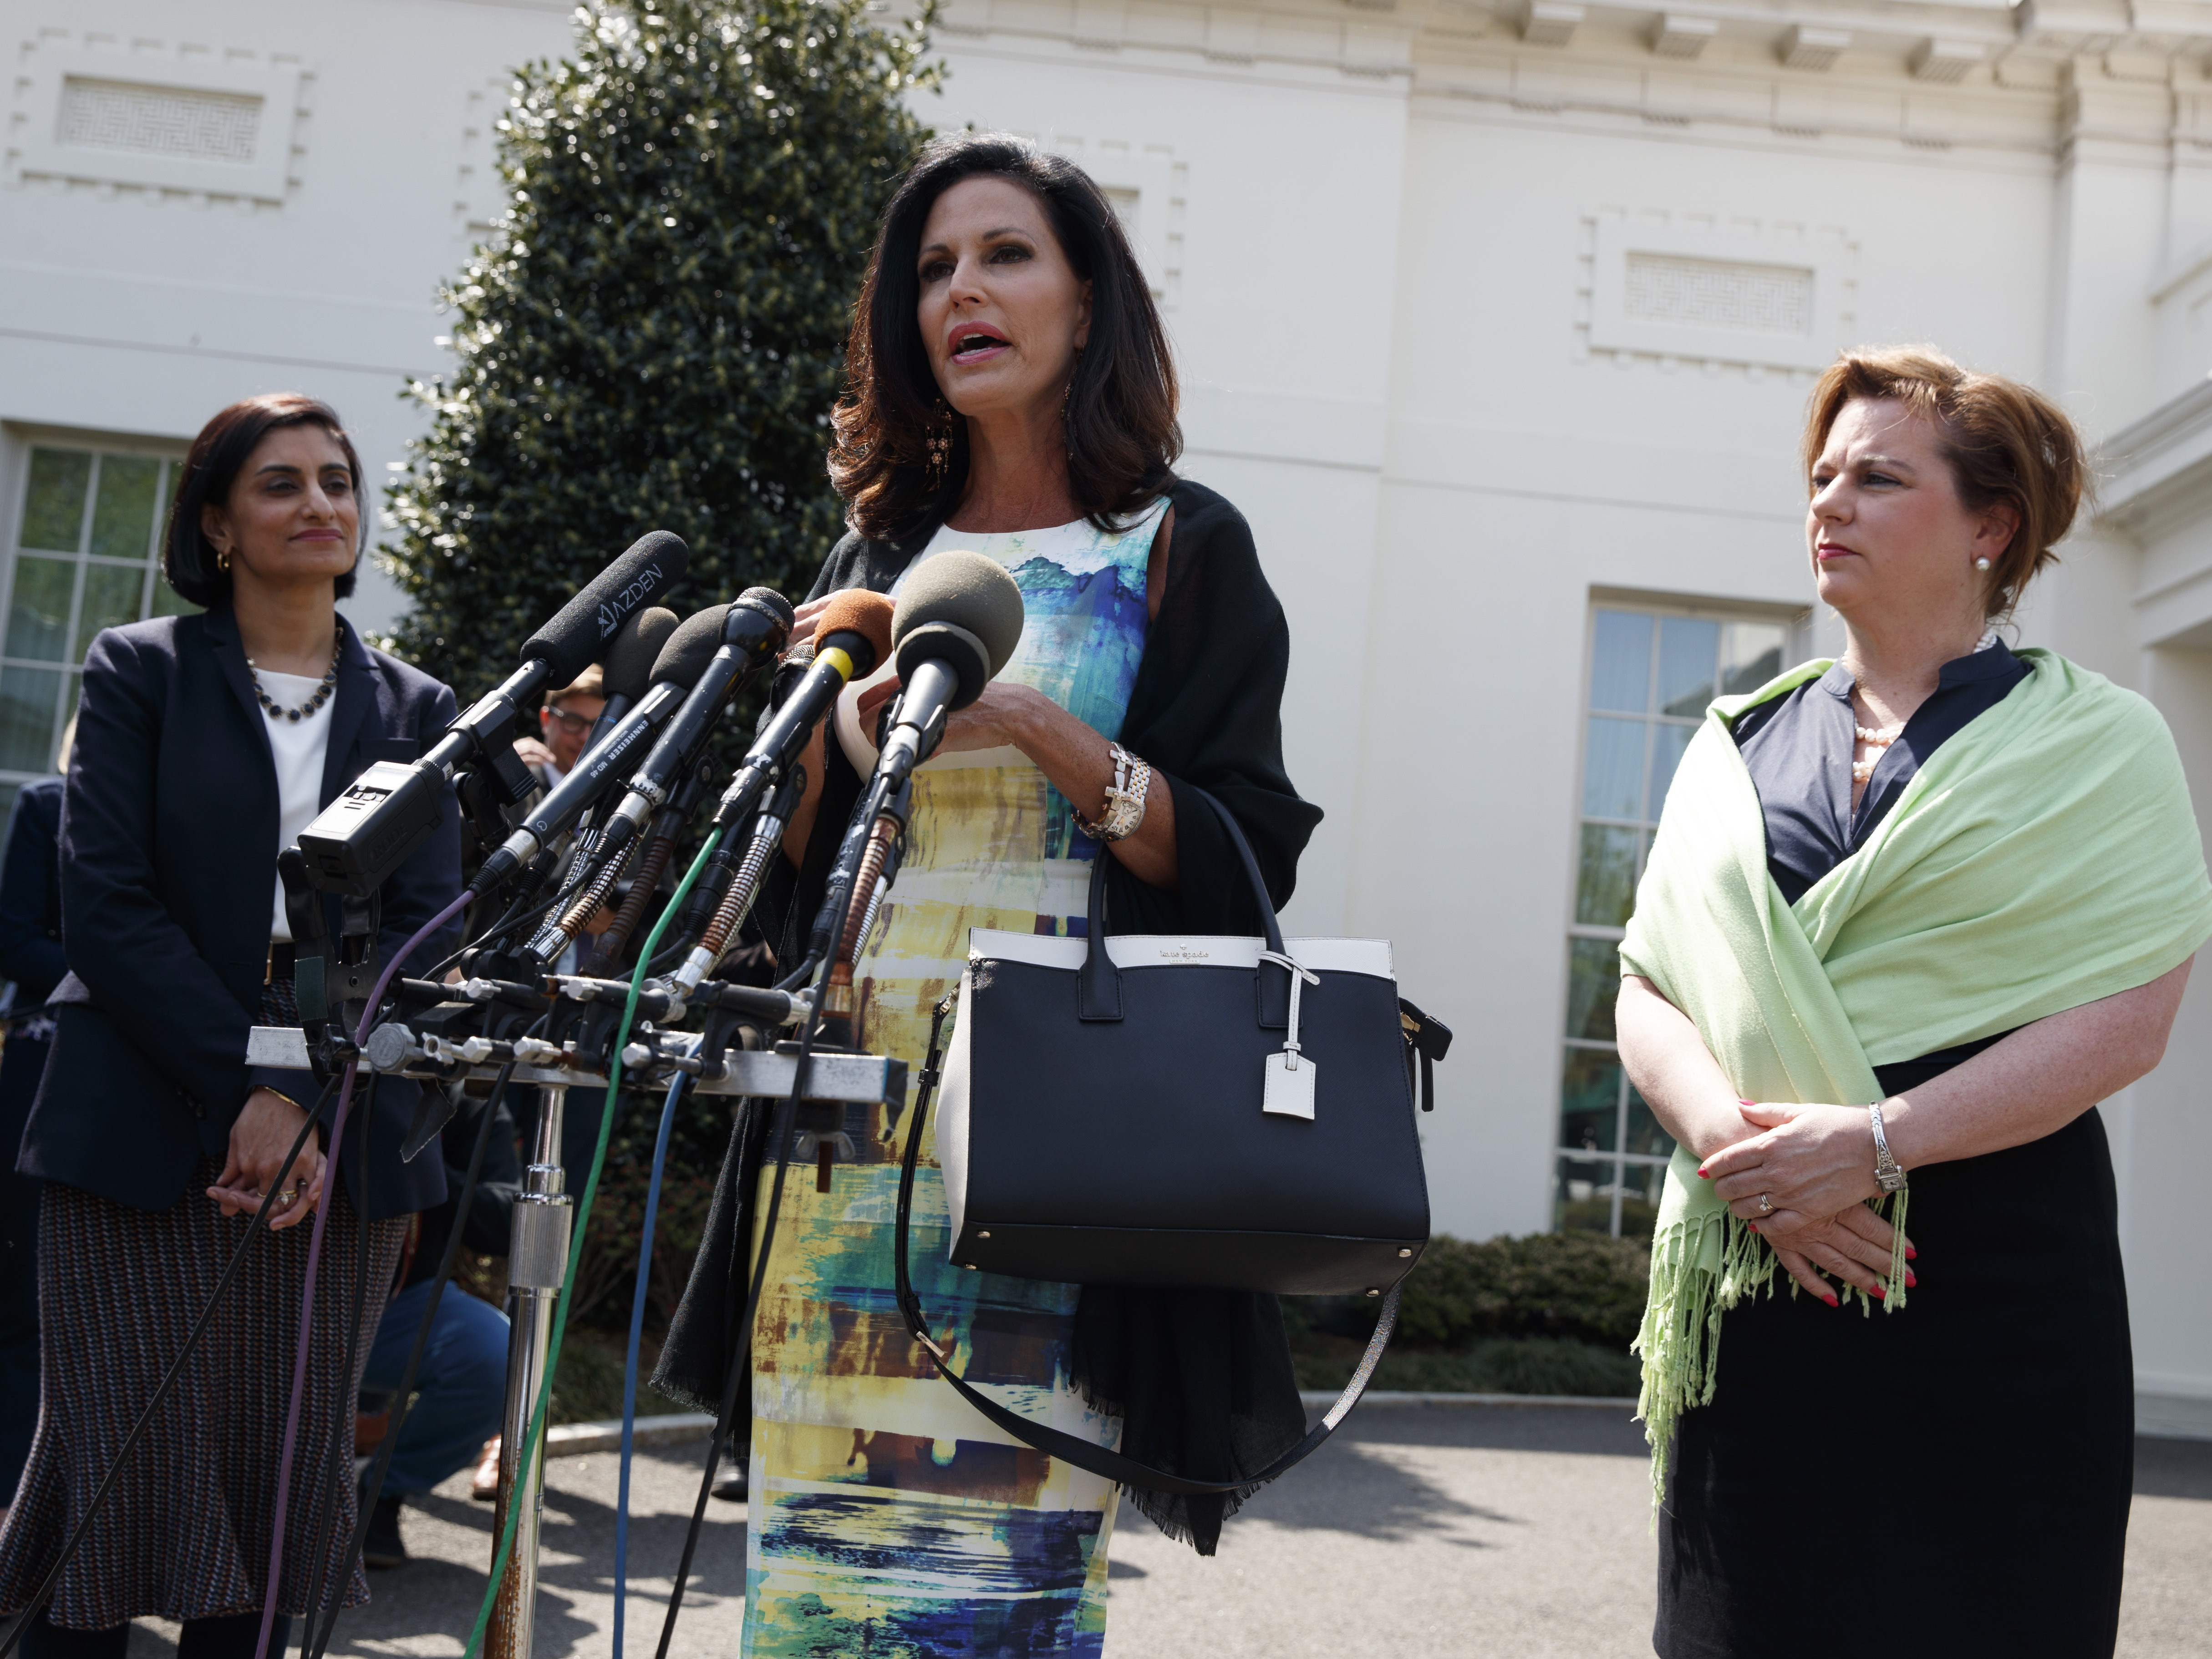 Marjorie Dannenfelser, president of the Susan B. Anthony List (right) and Seema Verma (left), administrator of the Centers for Medicare and Medicaid Services, look on as Concerned Women for America CEO Penny Nance speaks with reporters outside the White House on Thursday. (Evan Vucci/AP)